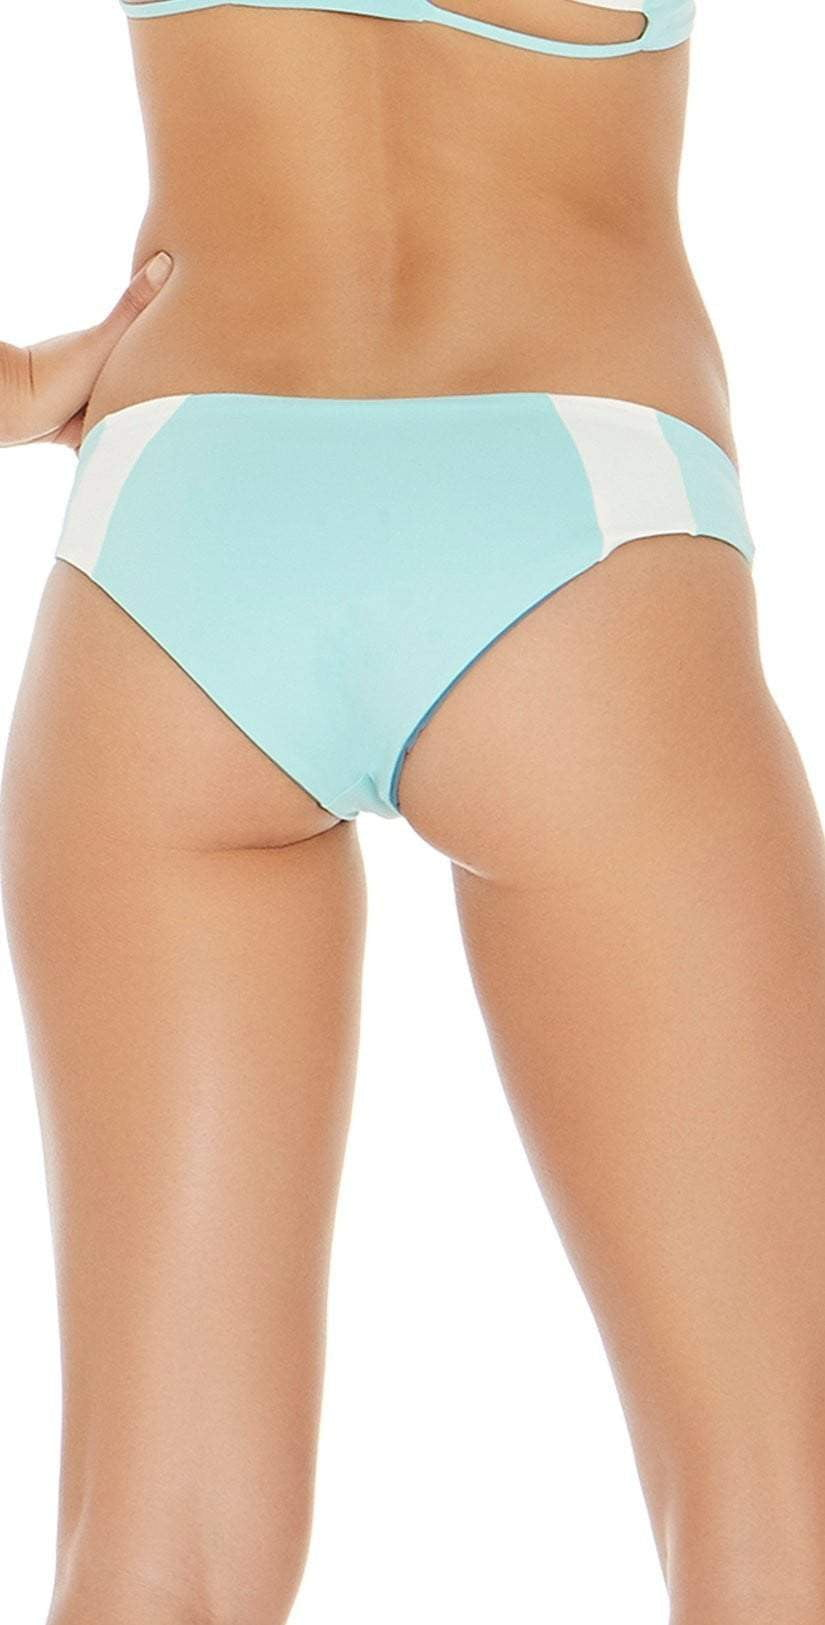 L Space Mia Color Block Reversible Bottom in Light Turquoise CBMAC16-LIT: